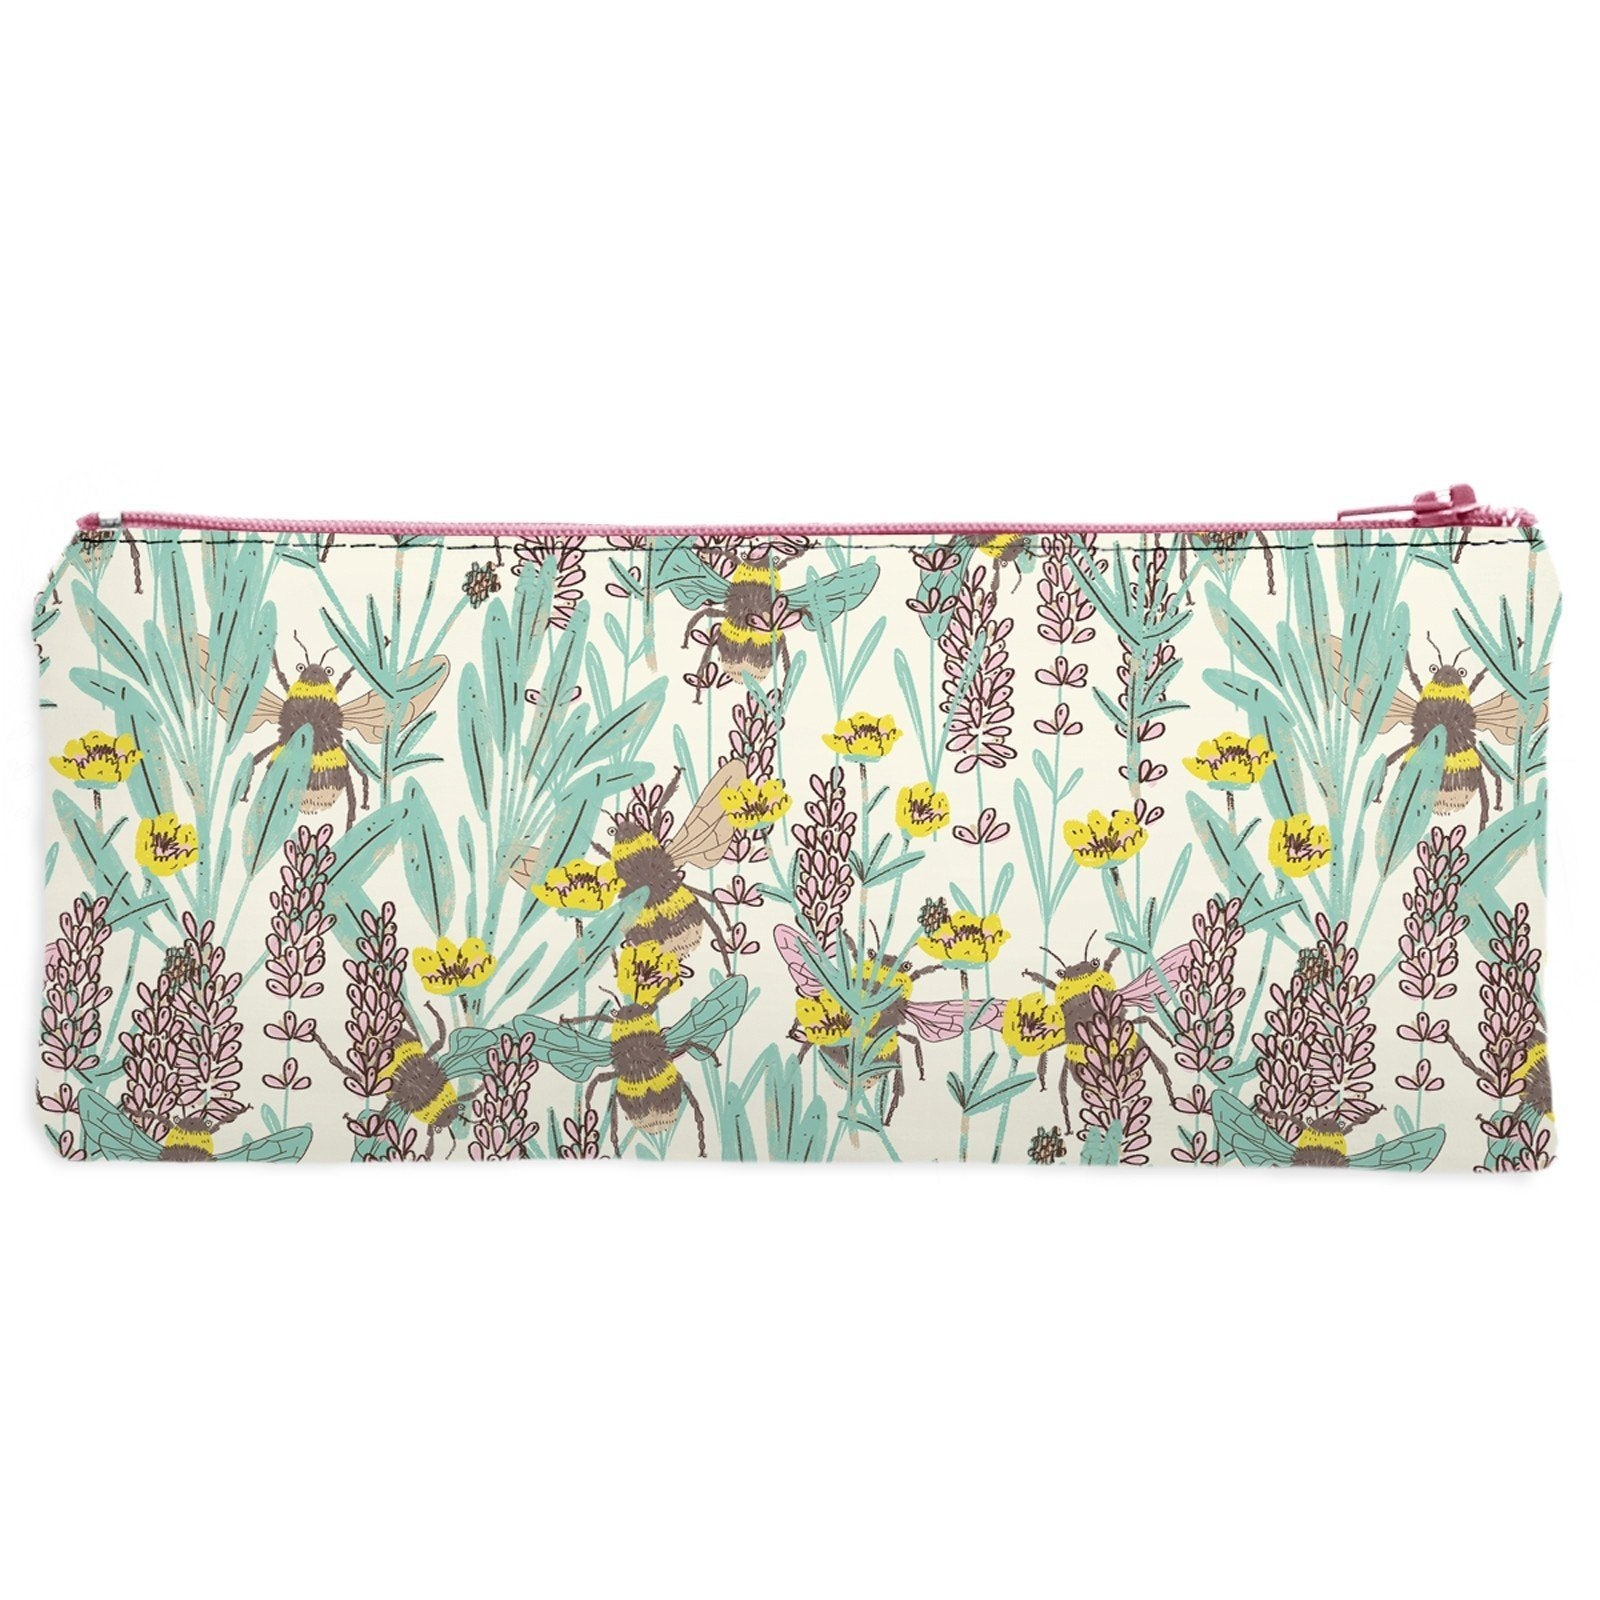 Bumblebee Meadow Pencil Case - Made in UK - BRIT LOCKER